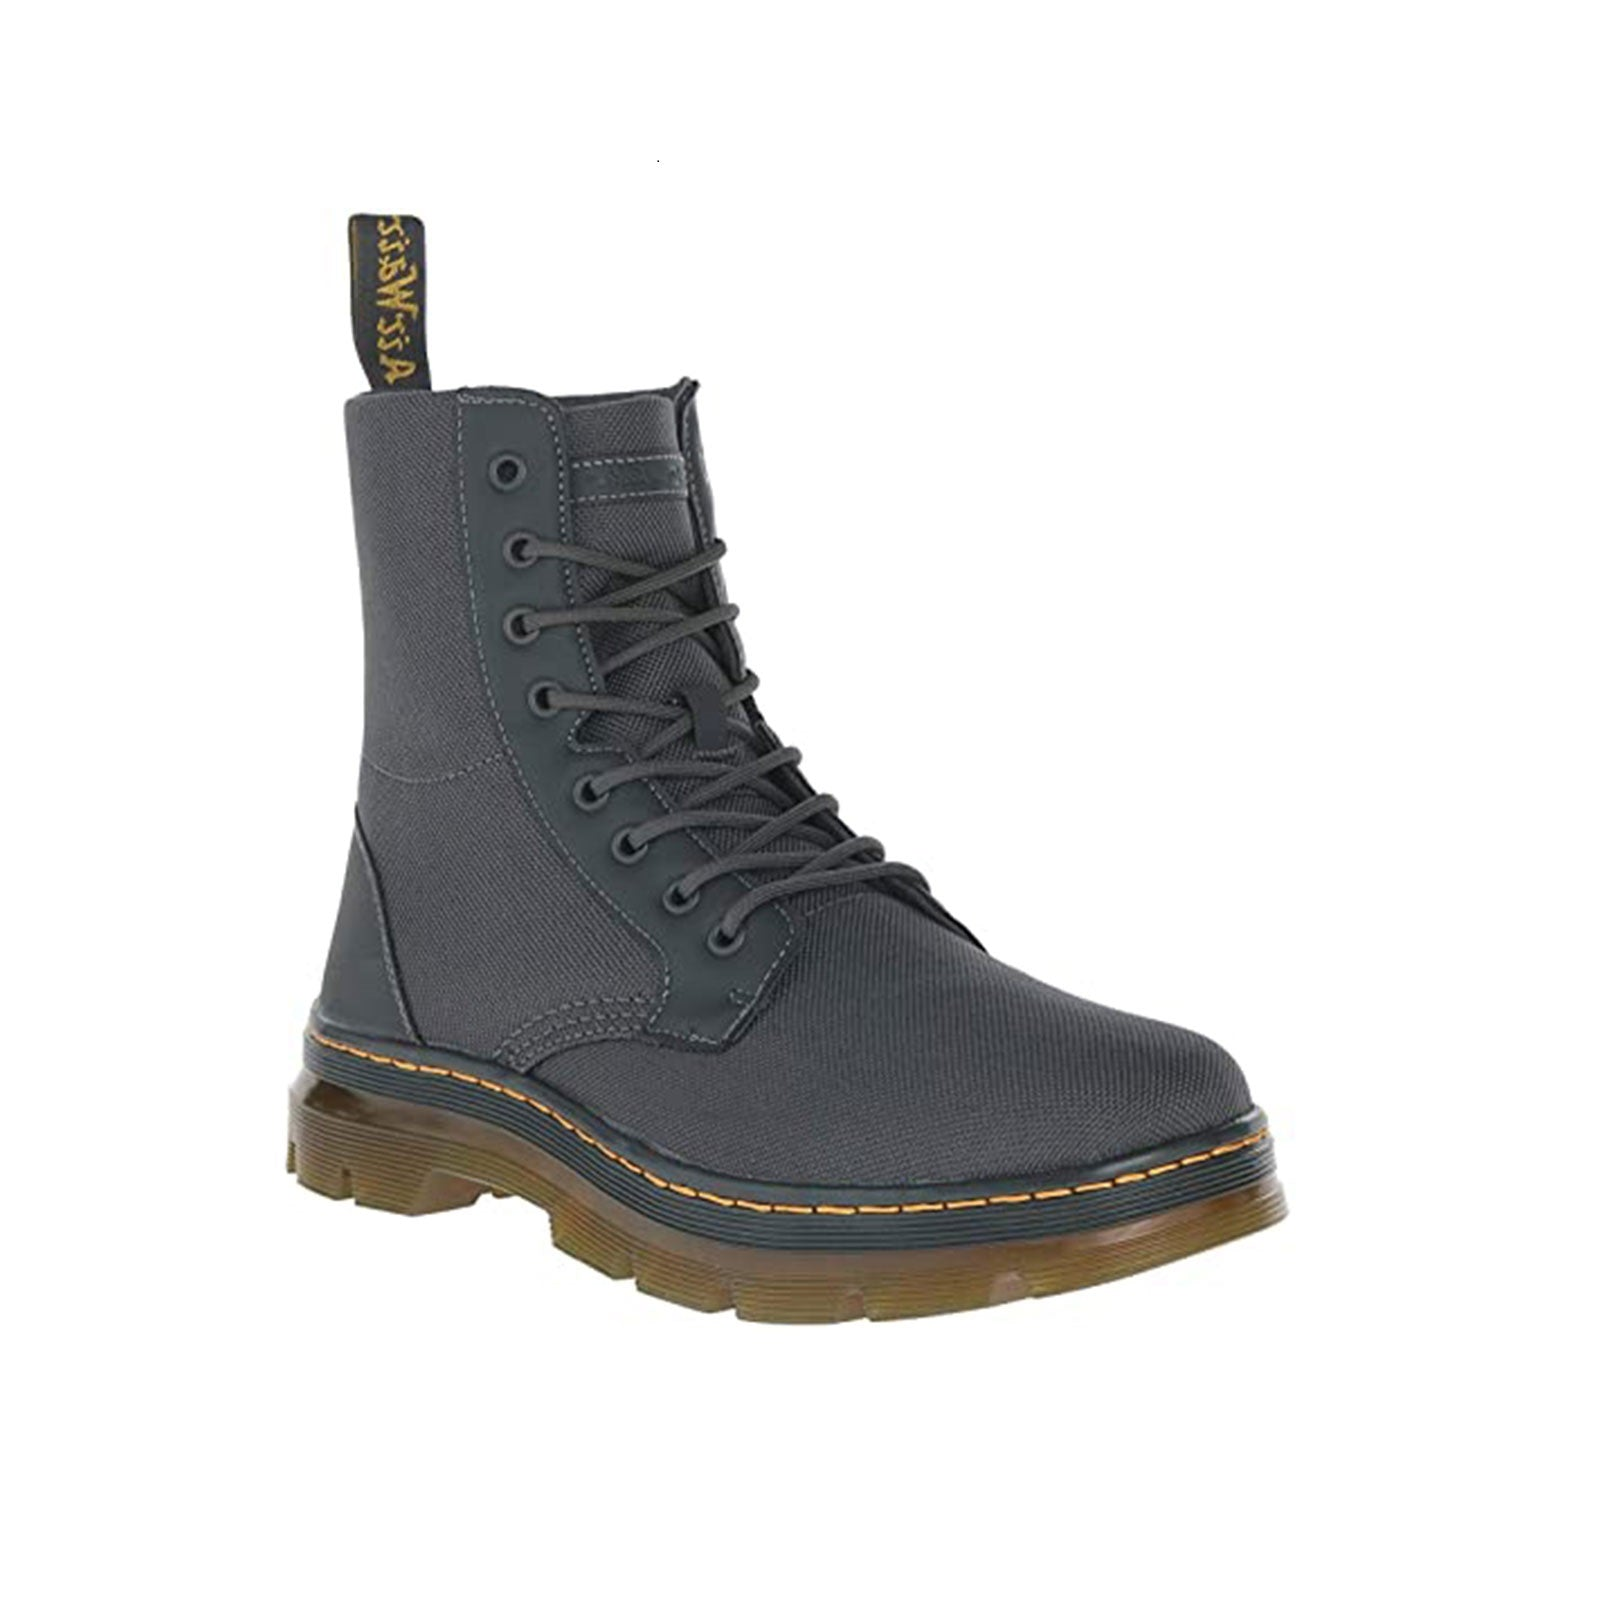 DR. MARTENS COMBS 16607010 (CHARCOAL)